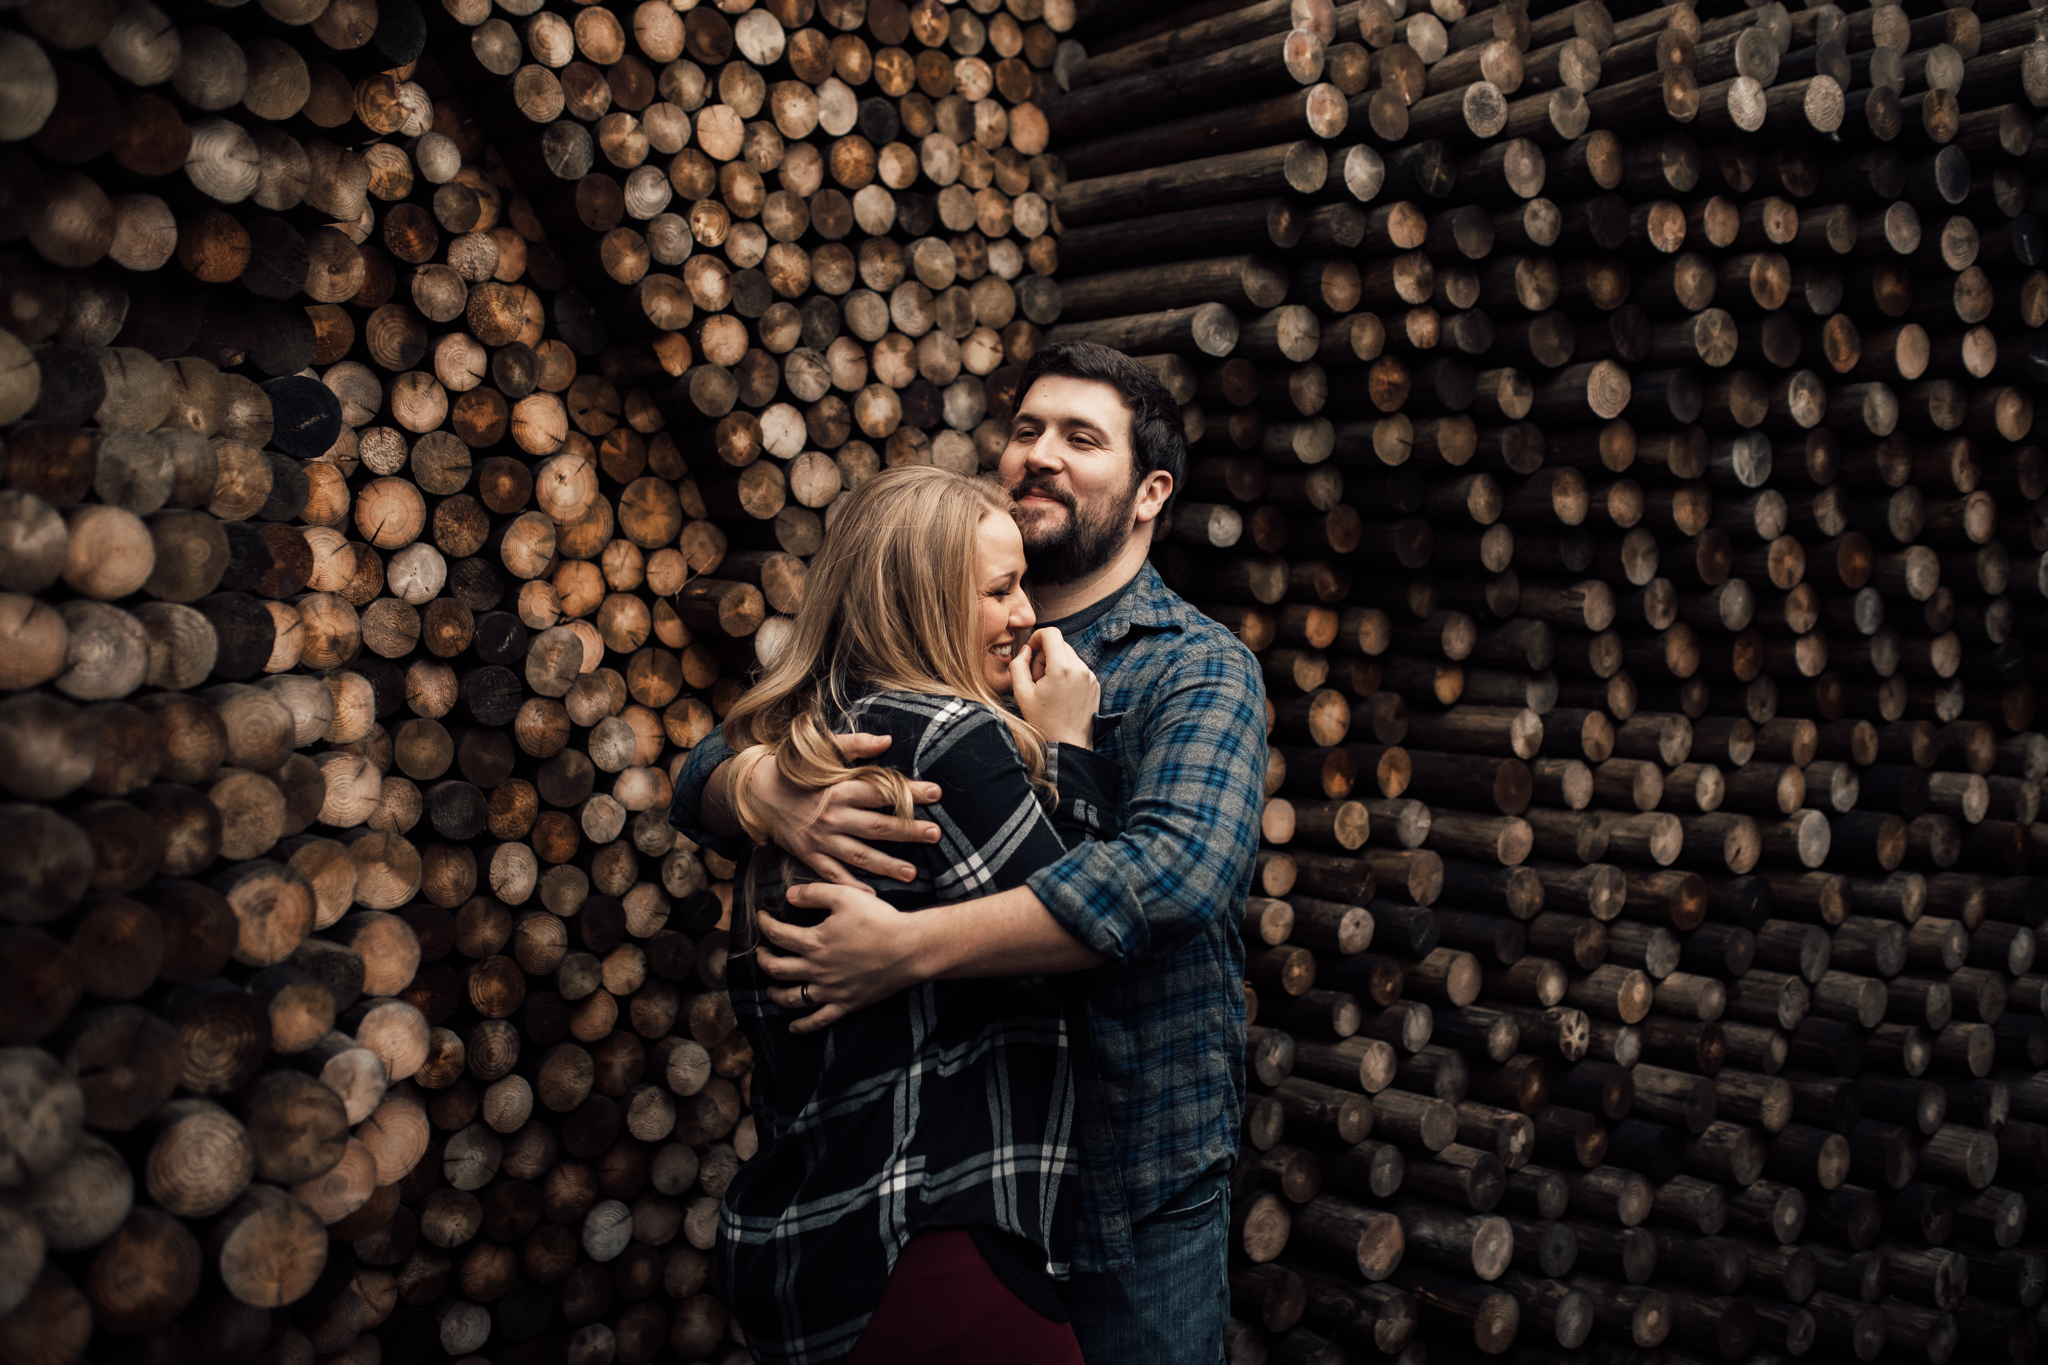 wiseacre-brewing-wedding-photographer-the-warmth-around-you-cassie-cook-photography (18 of 64).jpg